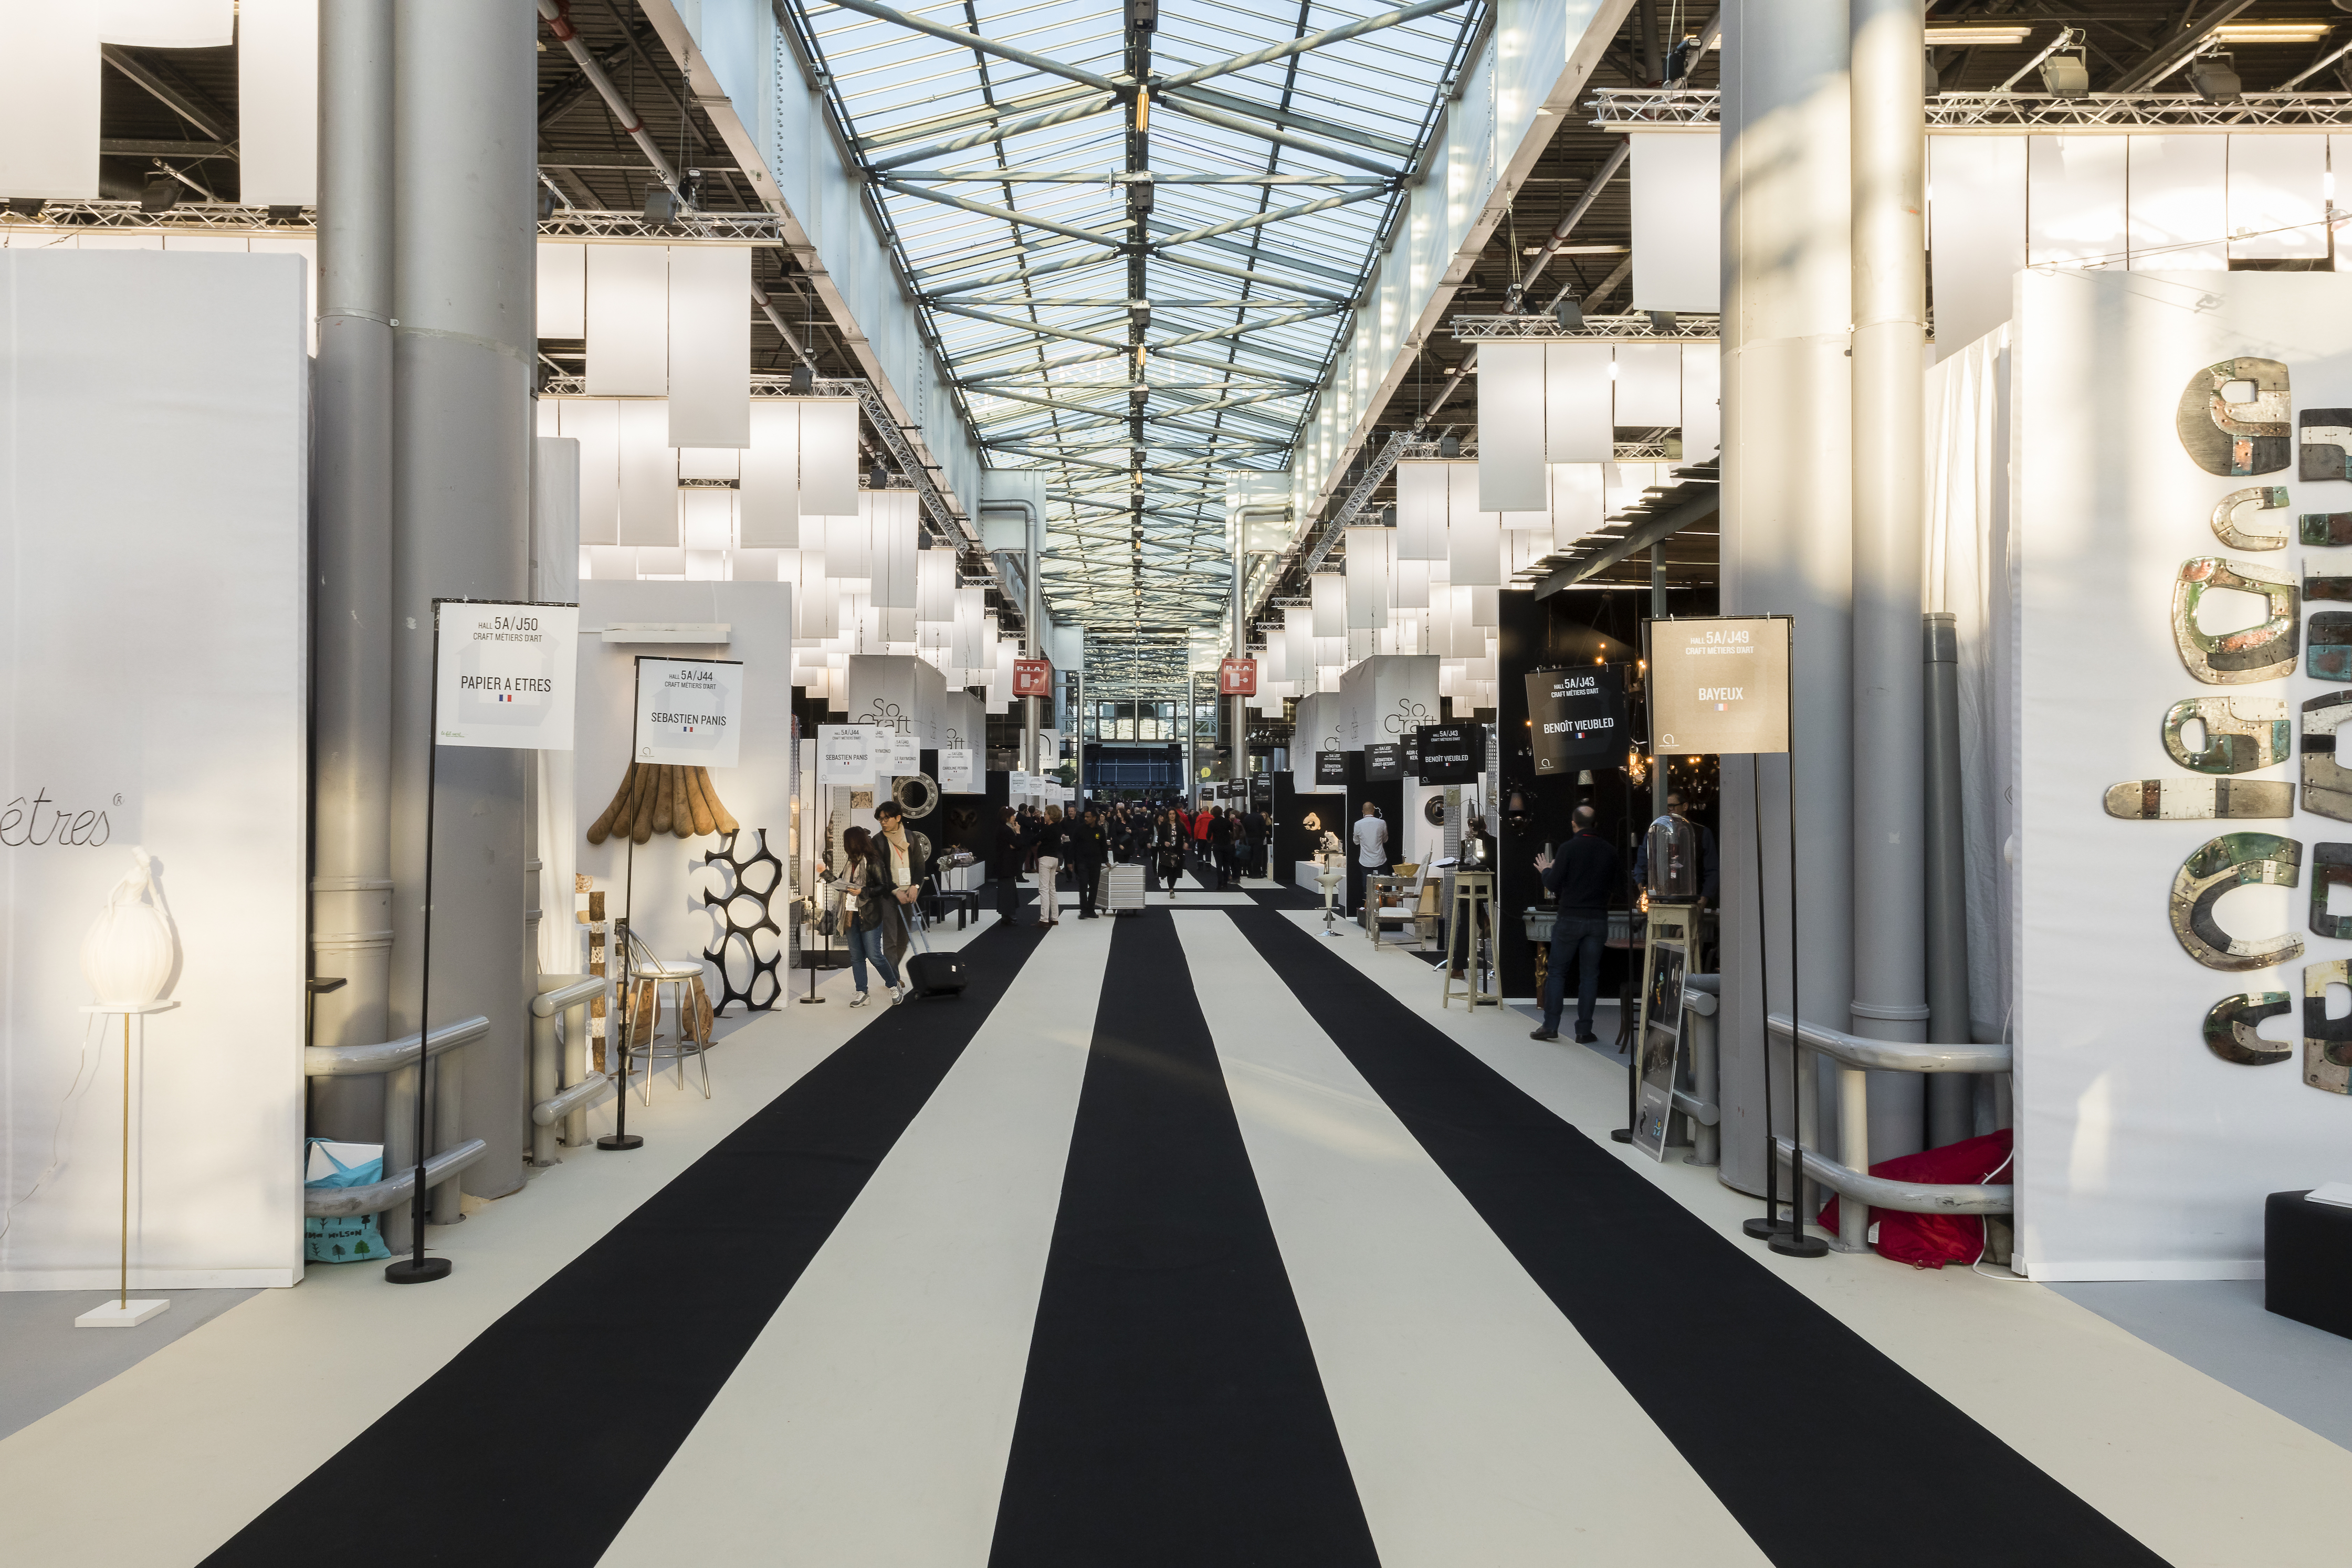 the best guide for maison et objet 2019 - part iii (city guide) The Best Guide For Maison et Objet 2019 – Part III (City Guide) 2